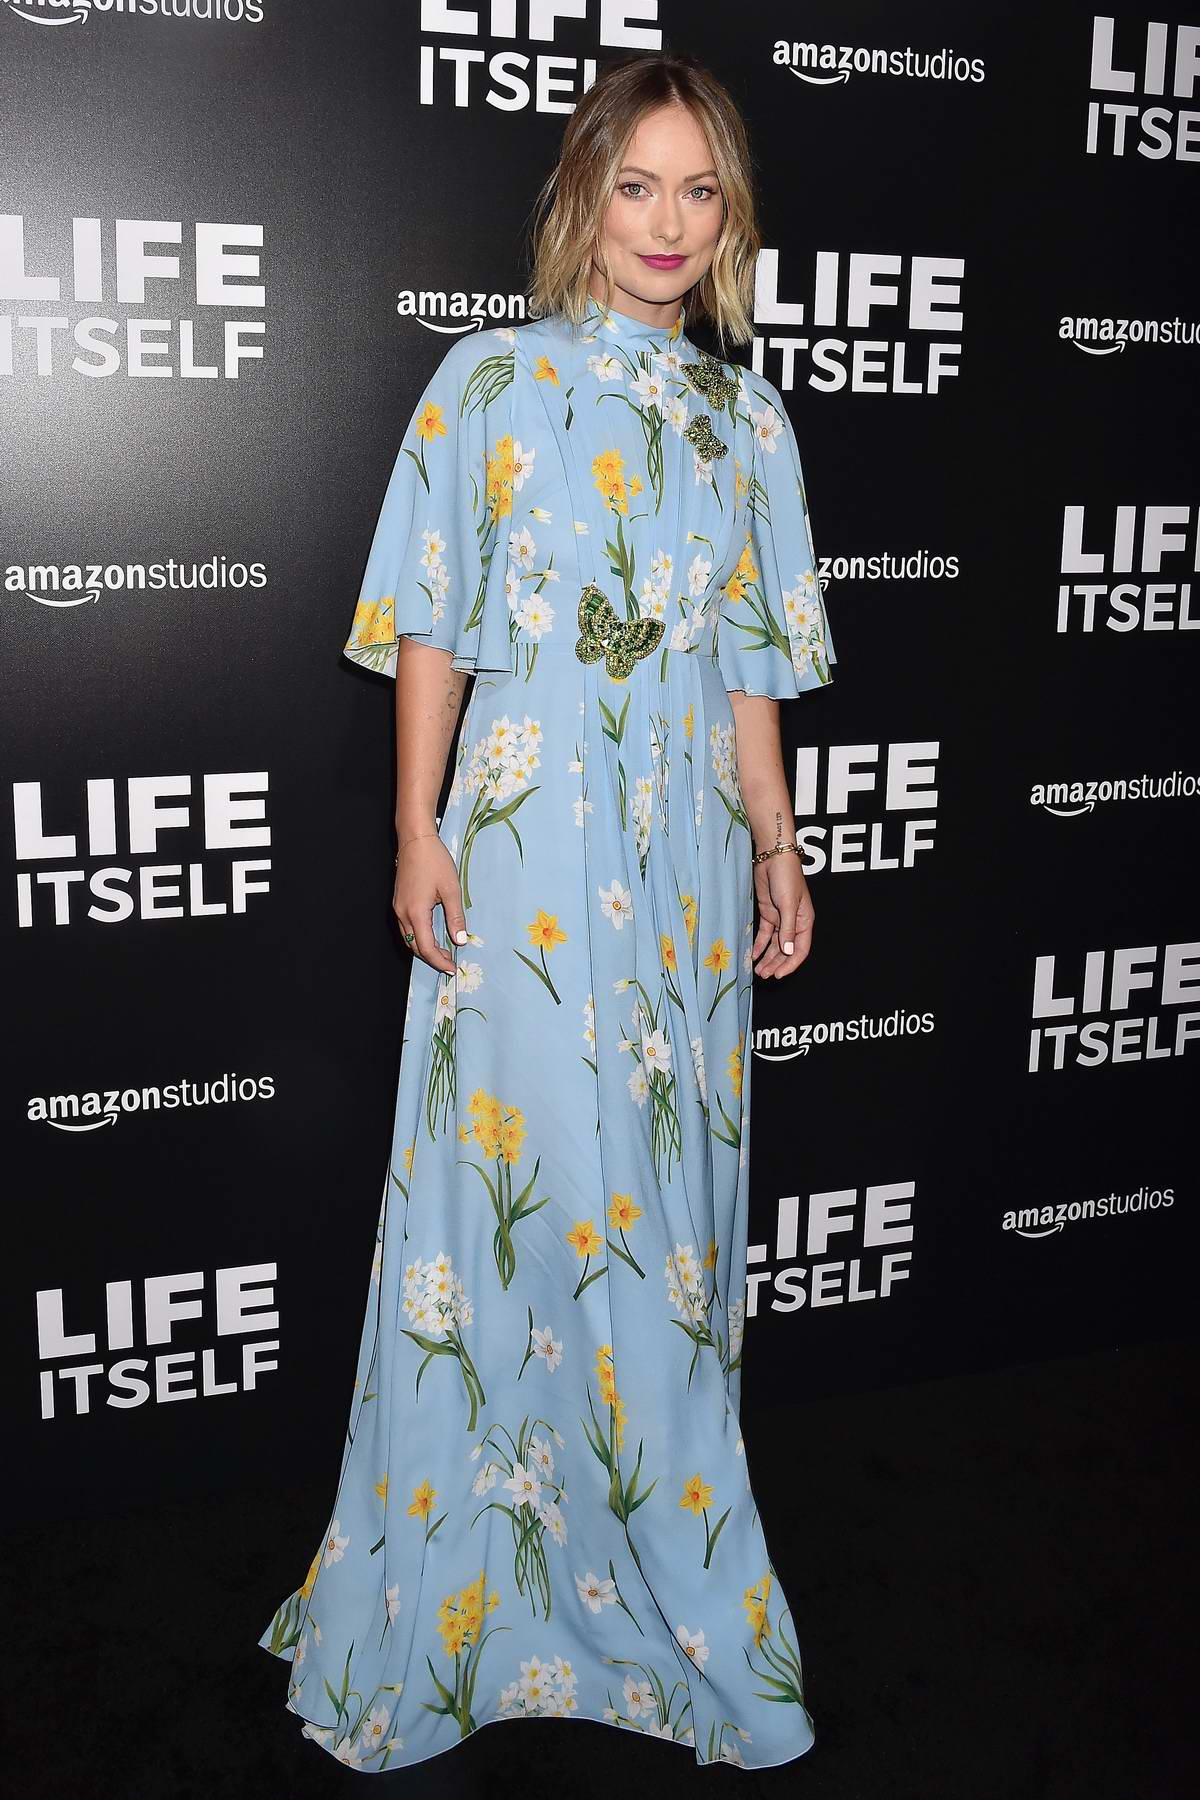 Olivia Wilde attends 'Life Itself' film premiere held at the ArcLight Cinerama Dome in Los Angeles